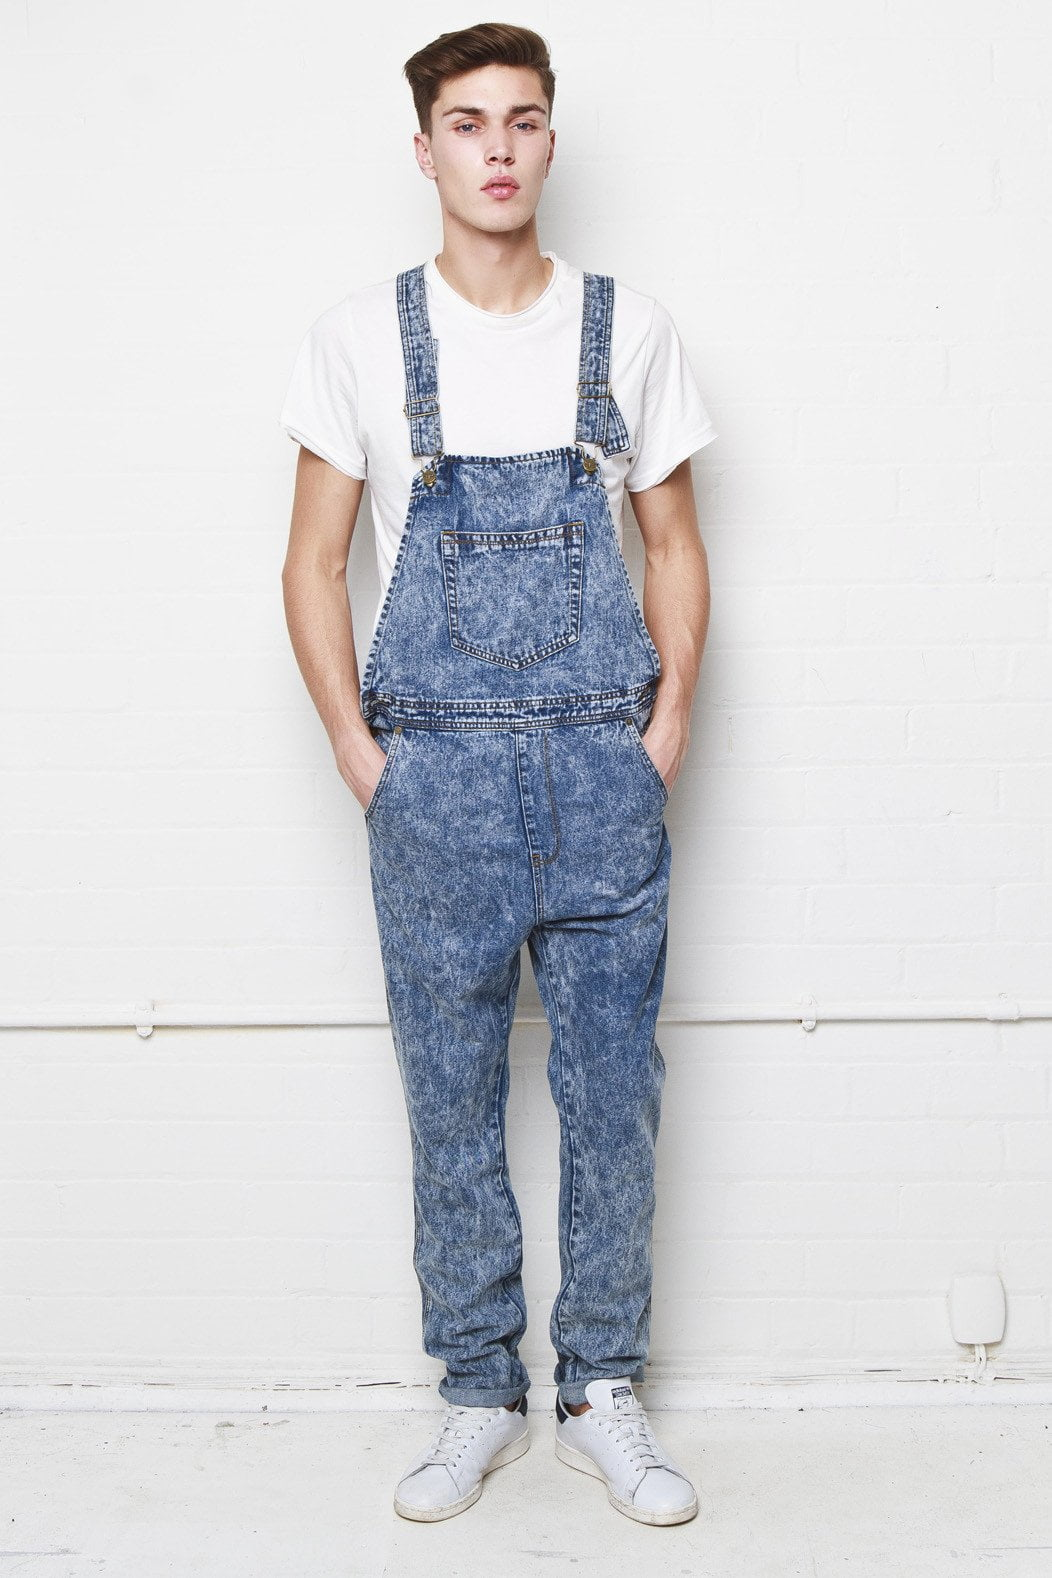 Liquor n Poker - Louisiana Acid Washed Blue straight leg dungaree - Liquor N Poker  Liquor N Poker